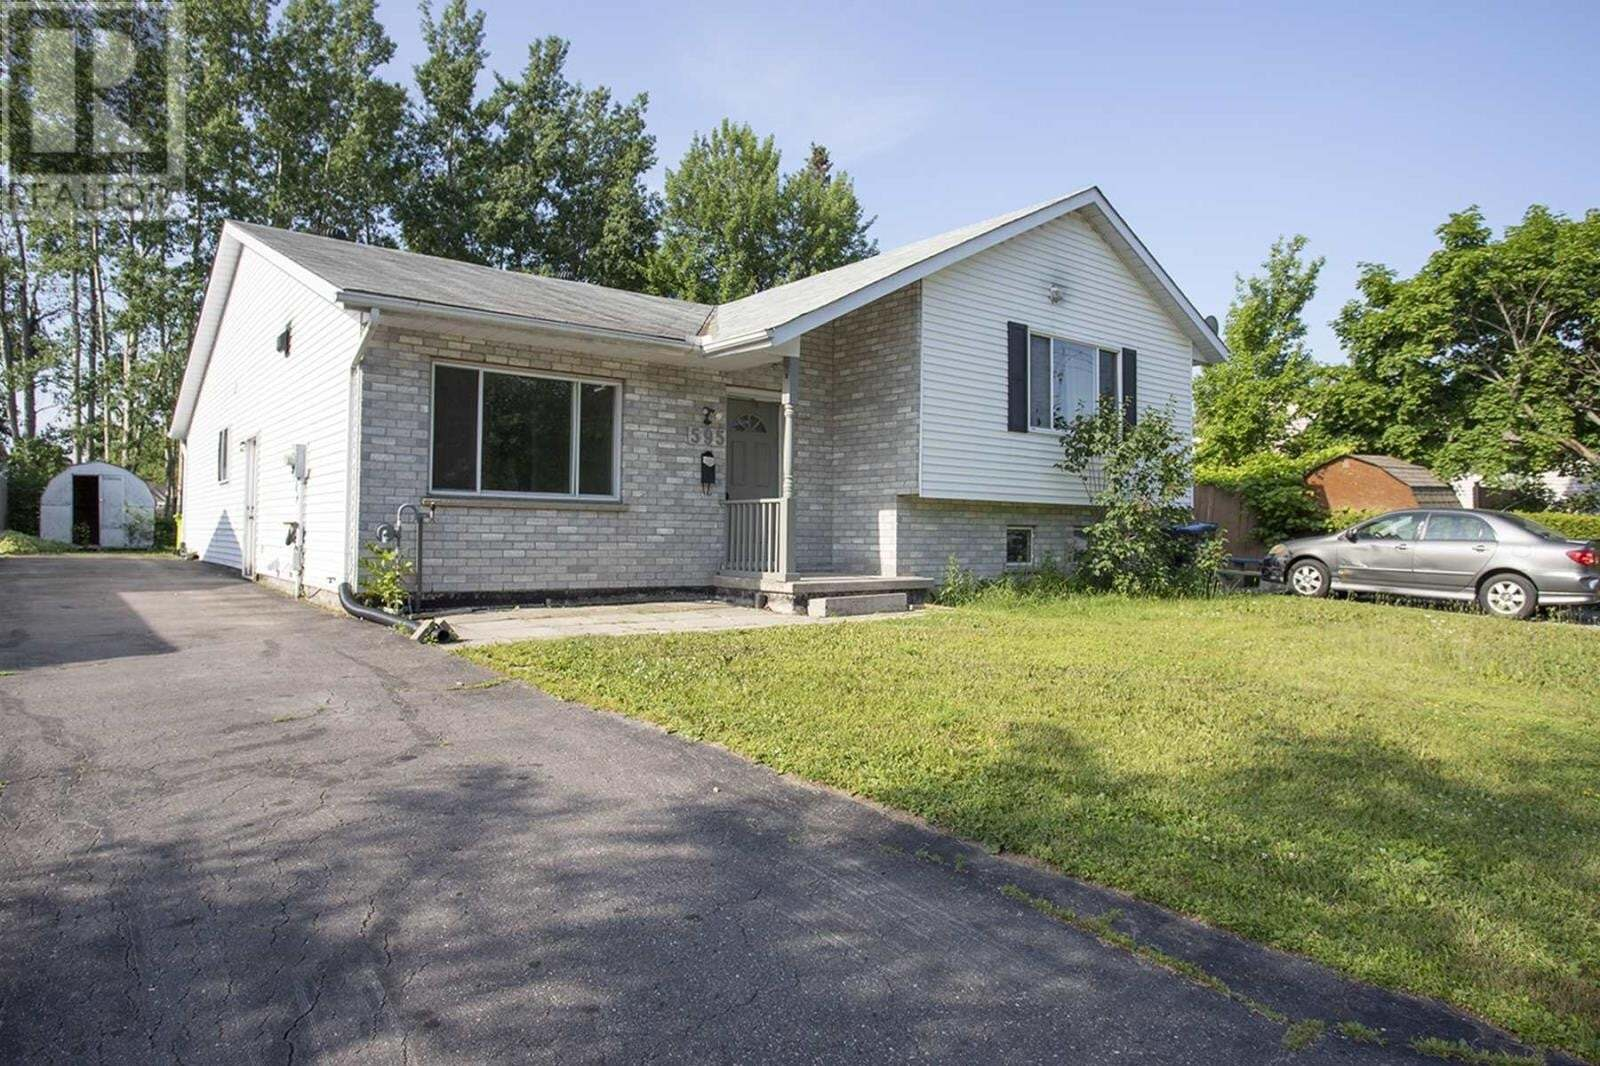 House for sale at 595 Northern Ave Sault Ste. Marie Ontario - MLS: SM129108